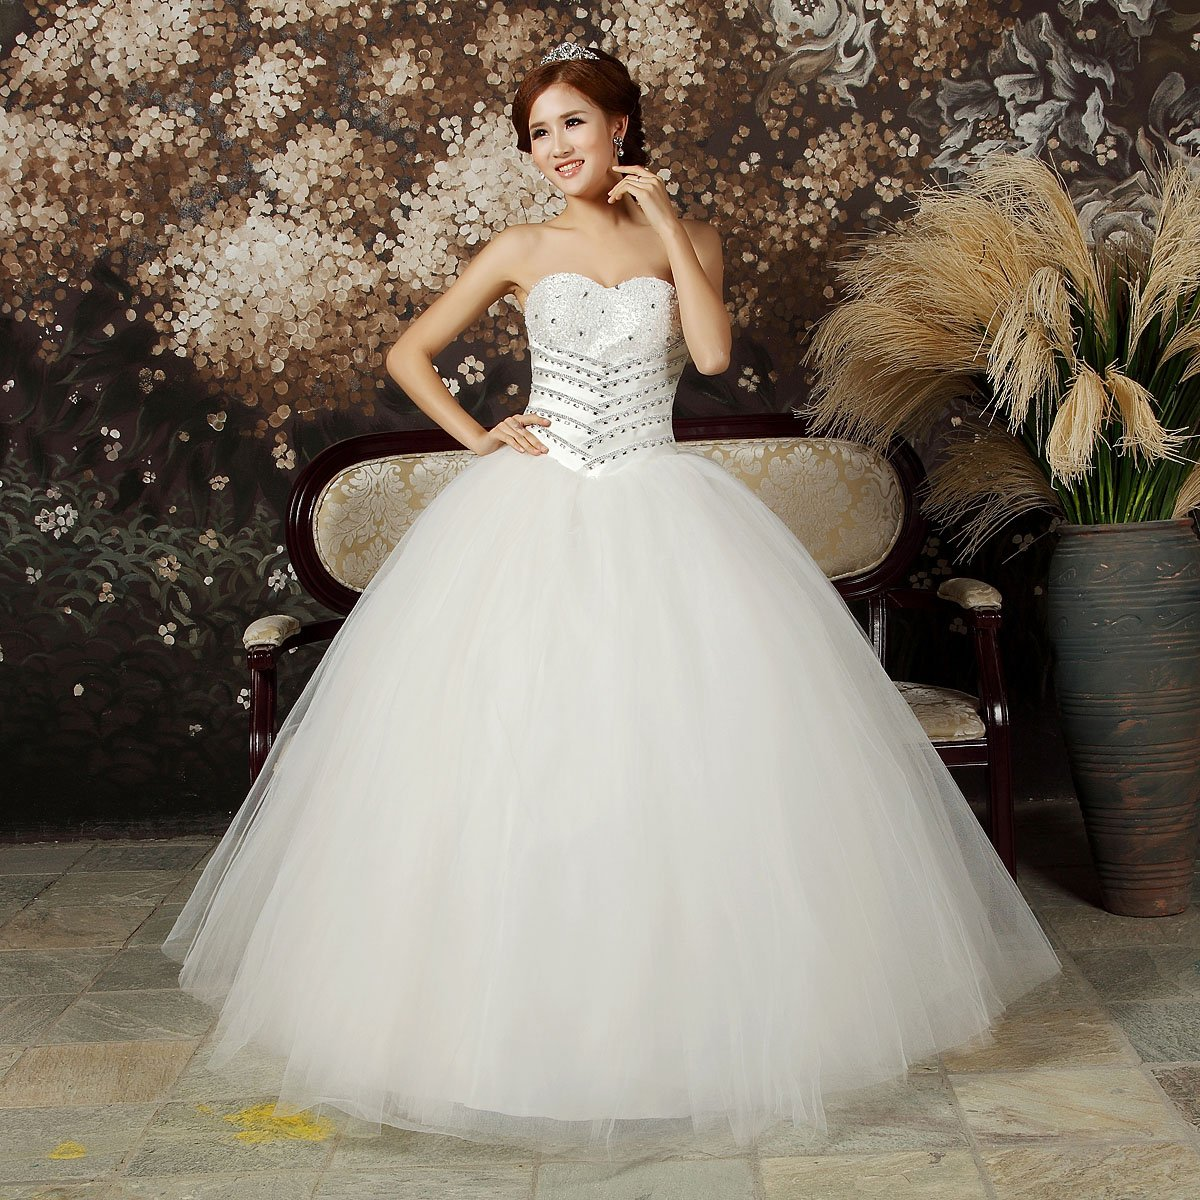 Disney style wedding dresses wedding and bridal inspiration for Disney style wedding dresses